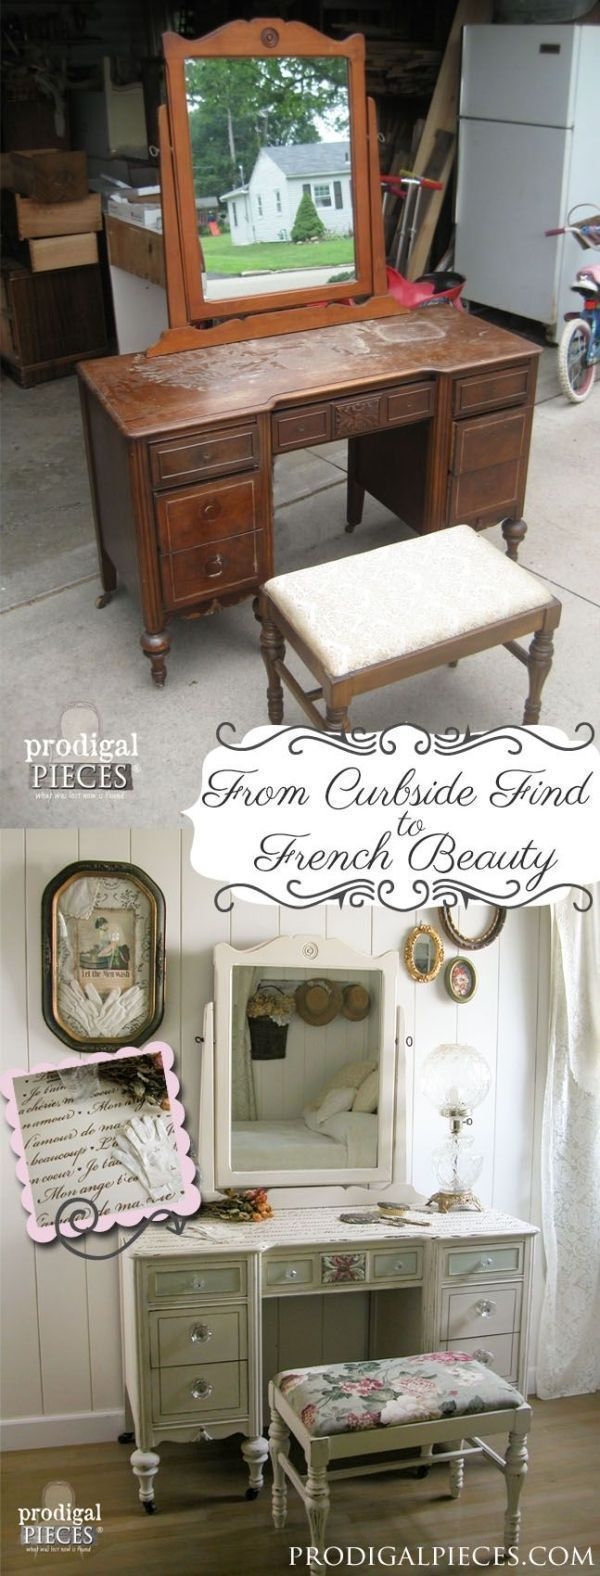 From curbside to French beauty - Shabby Chic Furniture using French quotes and lettering stencils - Royal Design Studio designer stencils for furniture makeover DIY projects by deborah #shabbychicfurnituremakeover #shabbychicfurniturefrench #stencilingdiy